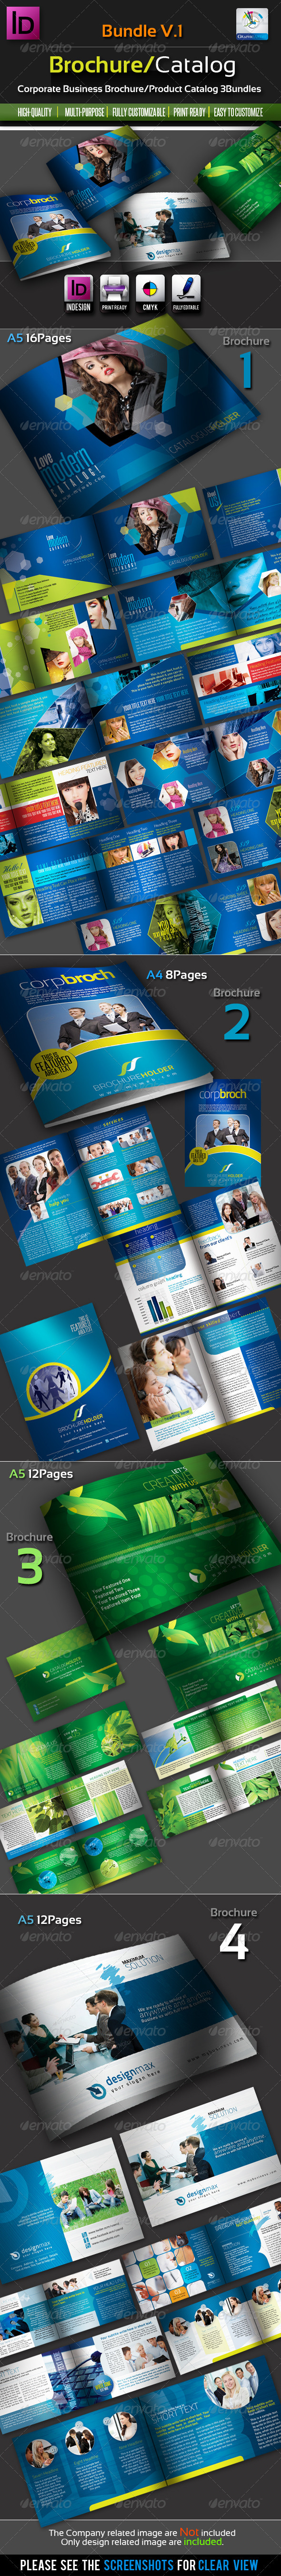 Corporate Brochure/Catalogue Bundles v.1 - Corporate Brochures